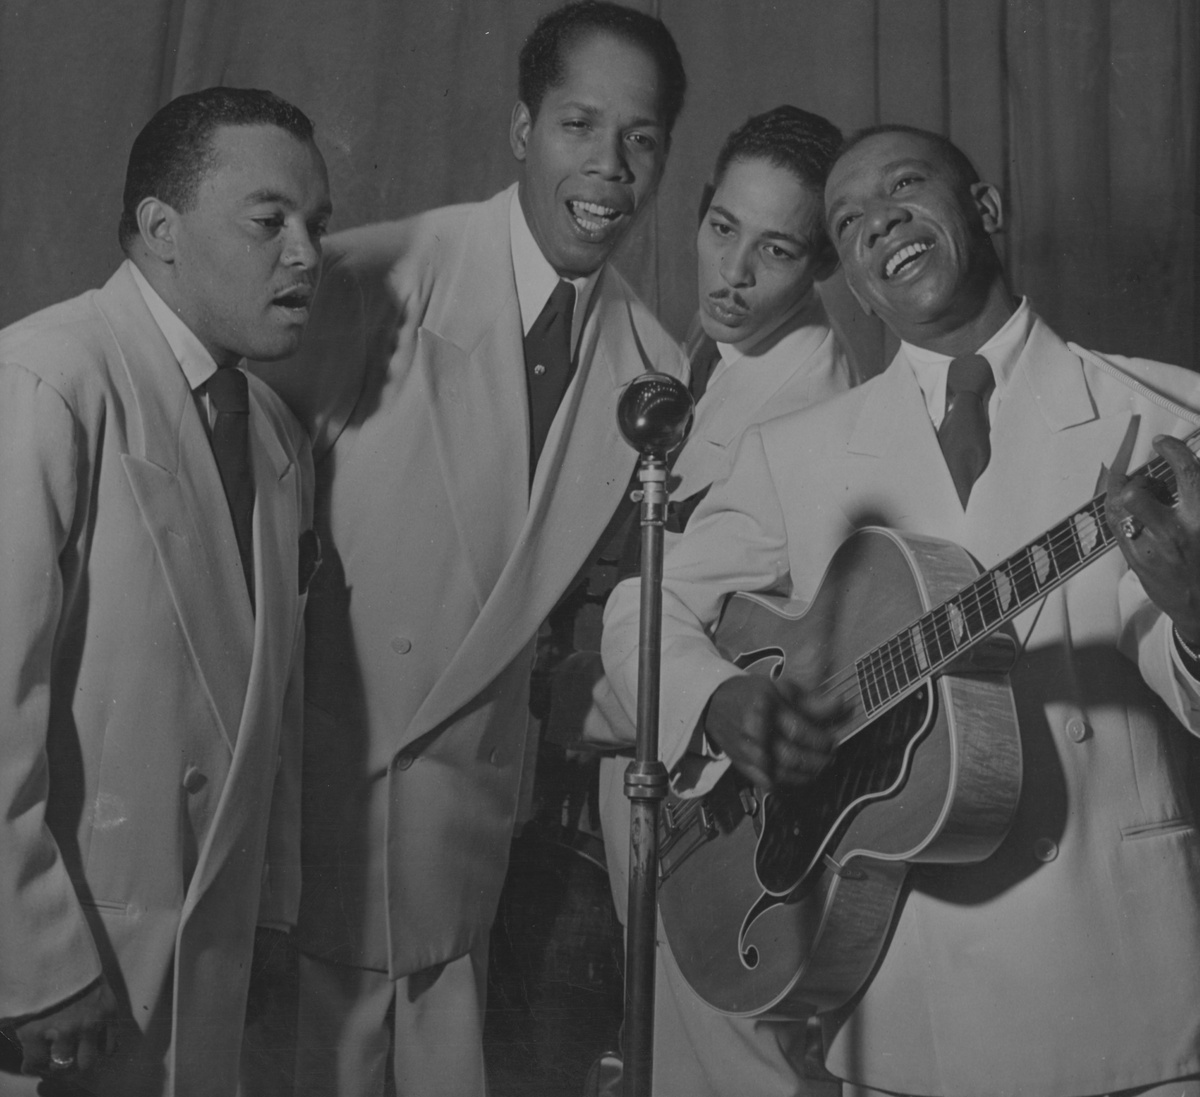 Vocal Groups Like The Ink Spots Went On For Decades Often Without A Single Member Of Original Group Appearing With Them Fred Ramage Getty Images Hide